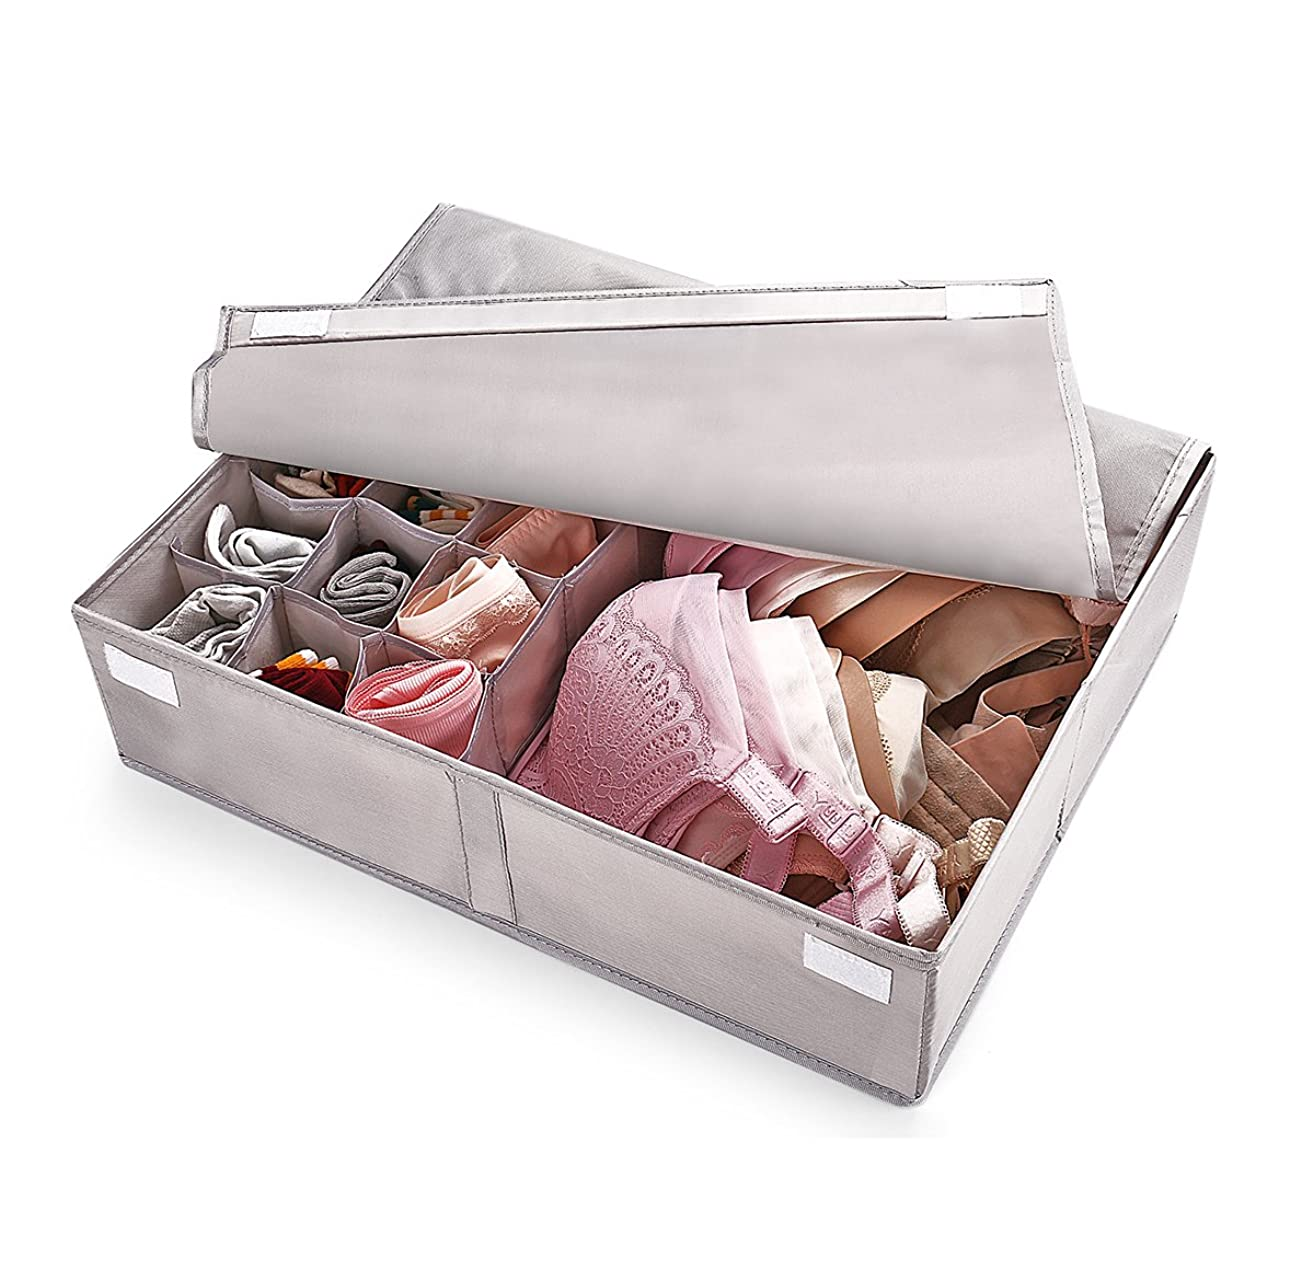 OYT Foldable Closet Underwear Organizer with Lid,Drawer Divider Organizers,Perfects for Sorting Storage Socks,Bra,Scarves and Lingerie in Wardrobe or Under Bed,Breathable Washable Oxford Fabric(Grey)